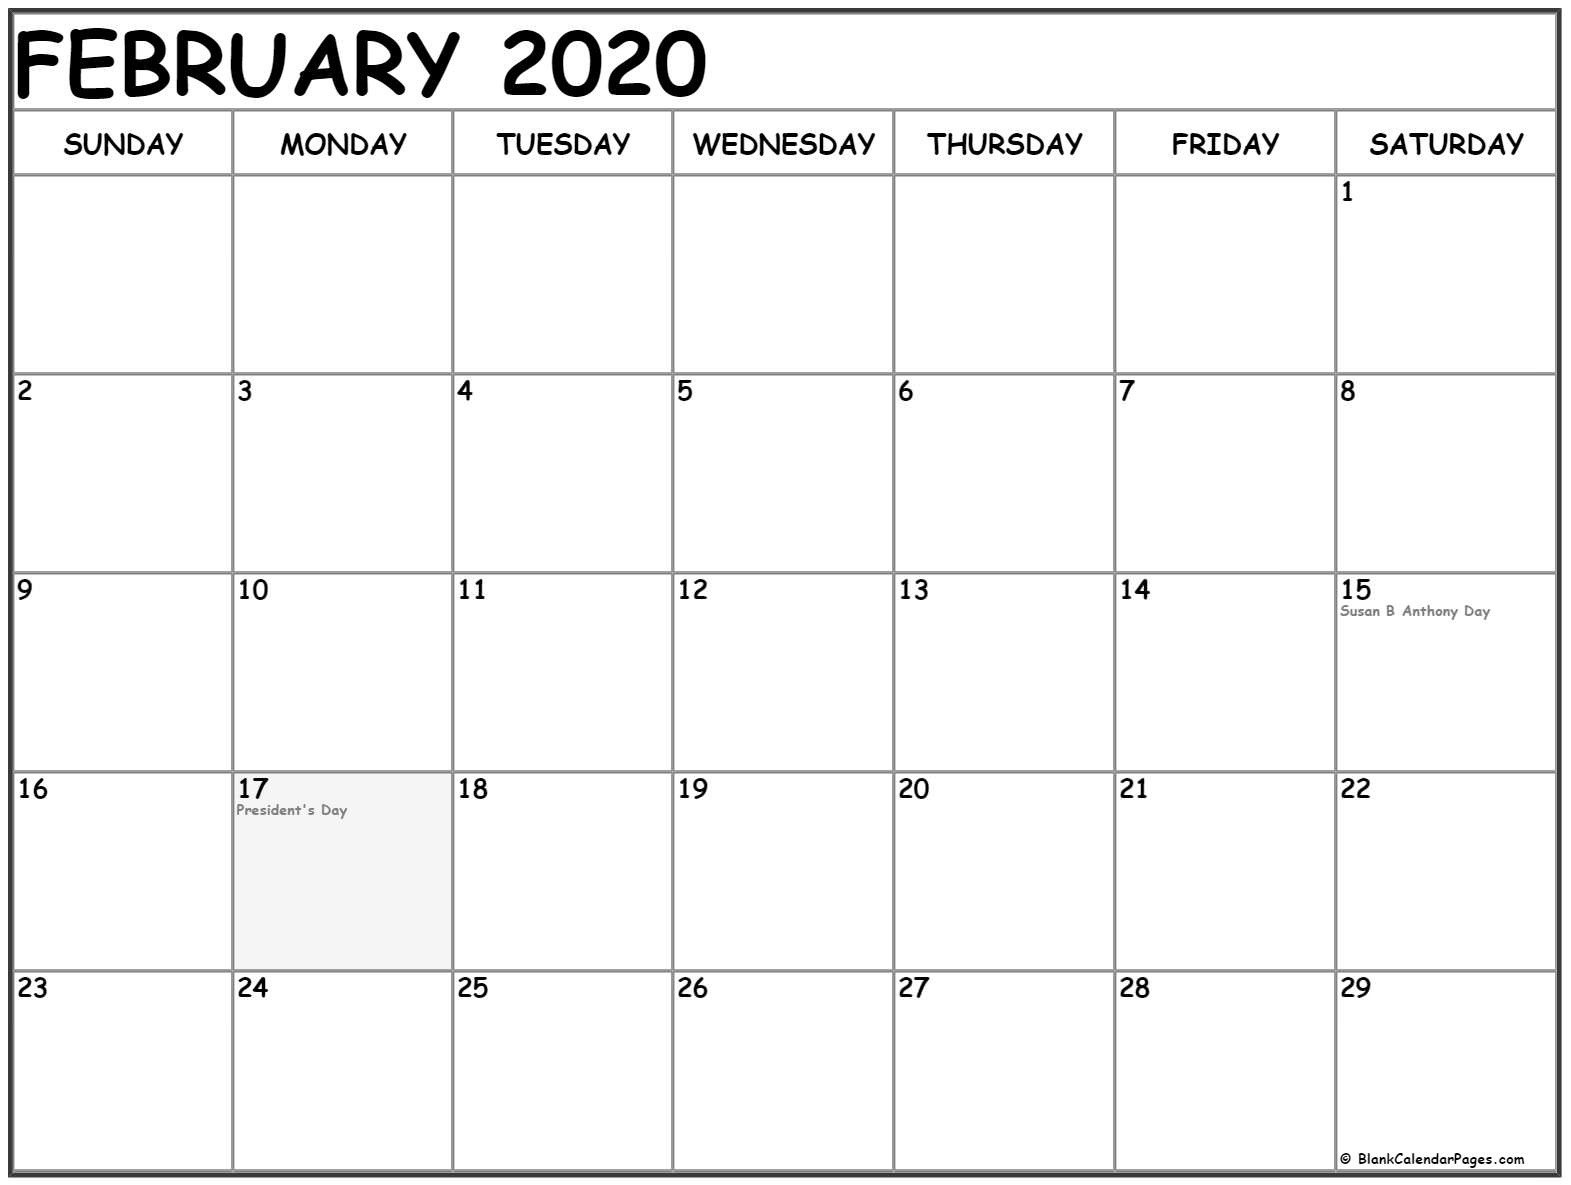 February 2020 Holiday Calendar